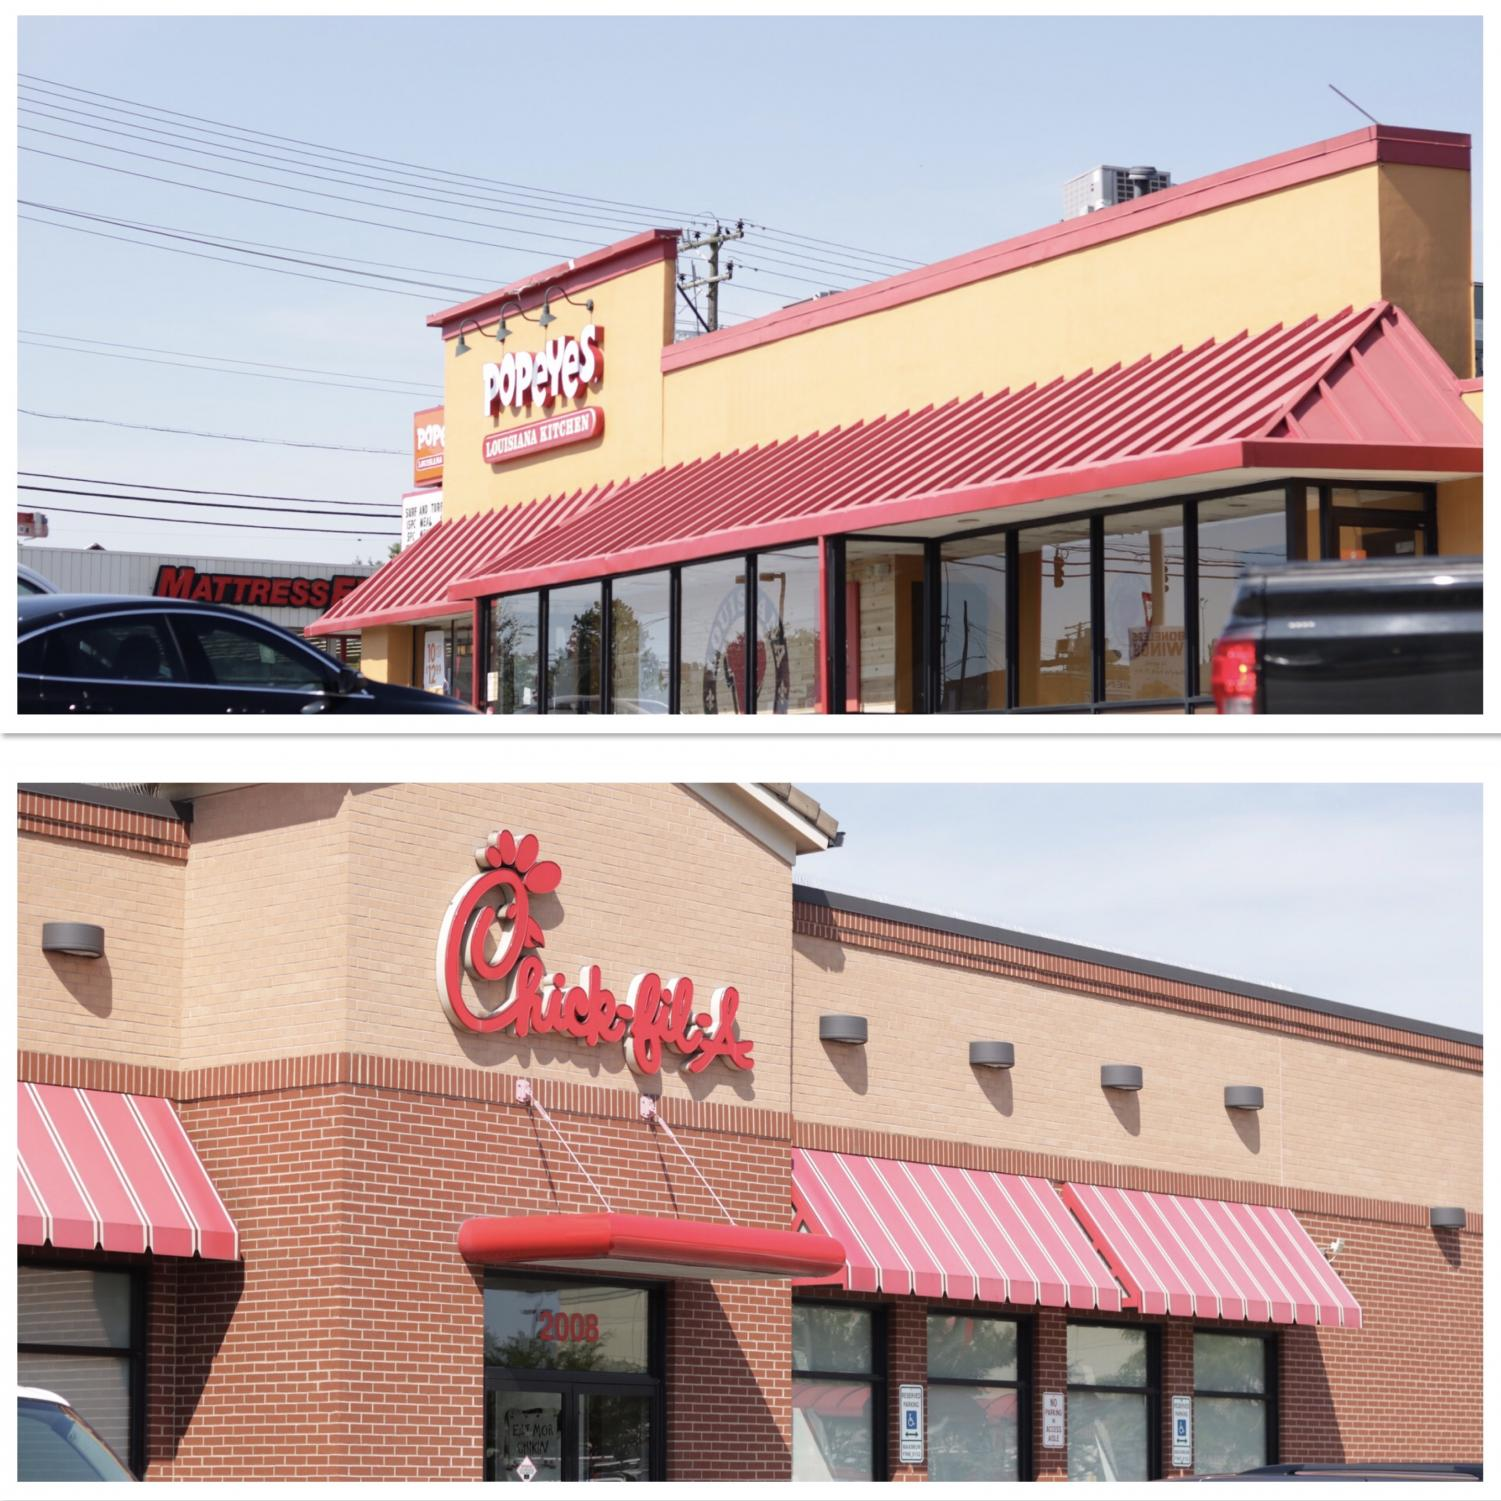 Popeyes and Chick-Fil-A located on York Rd. are walking distance from one another.